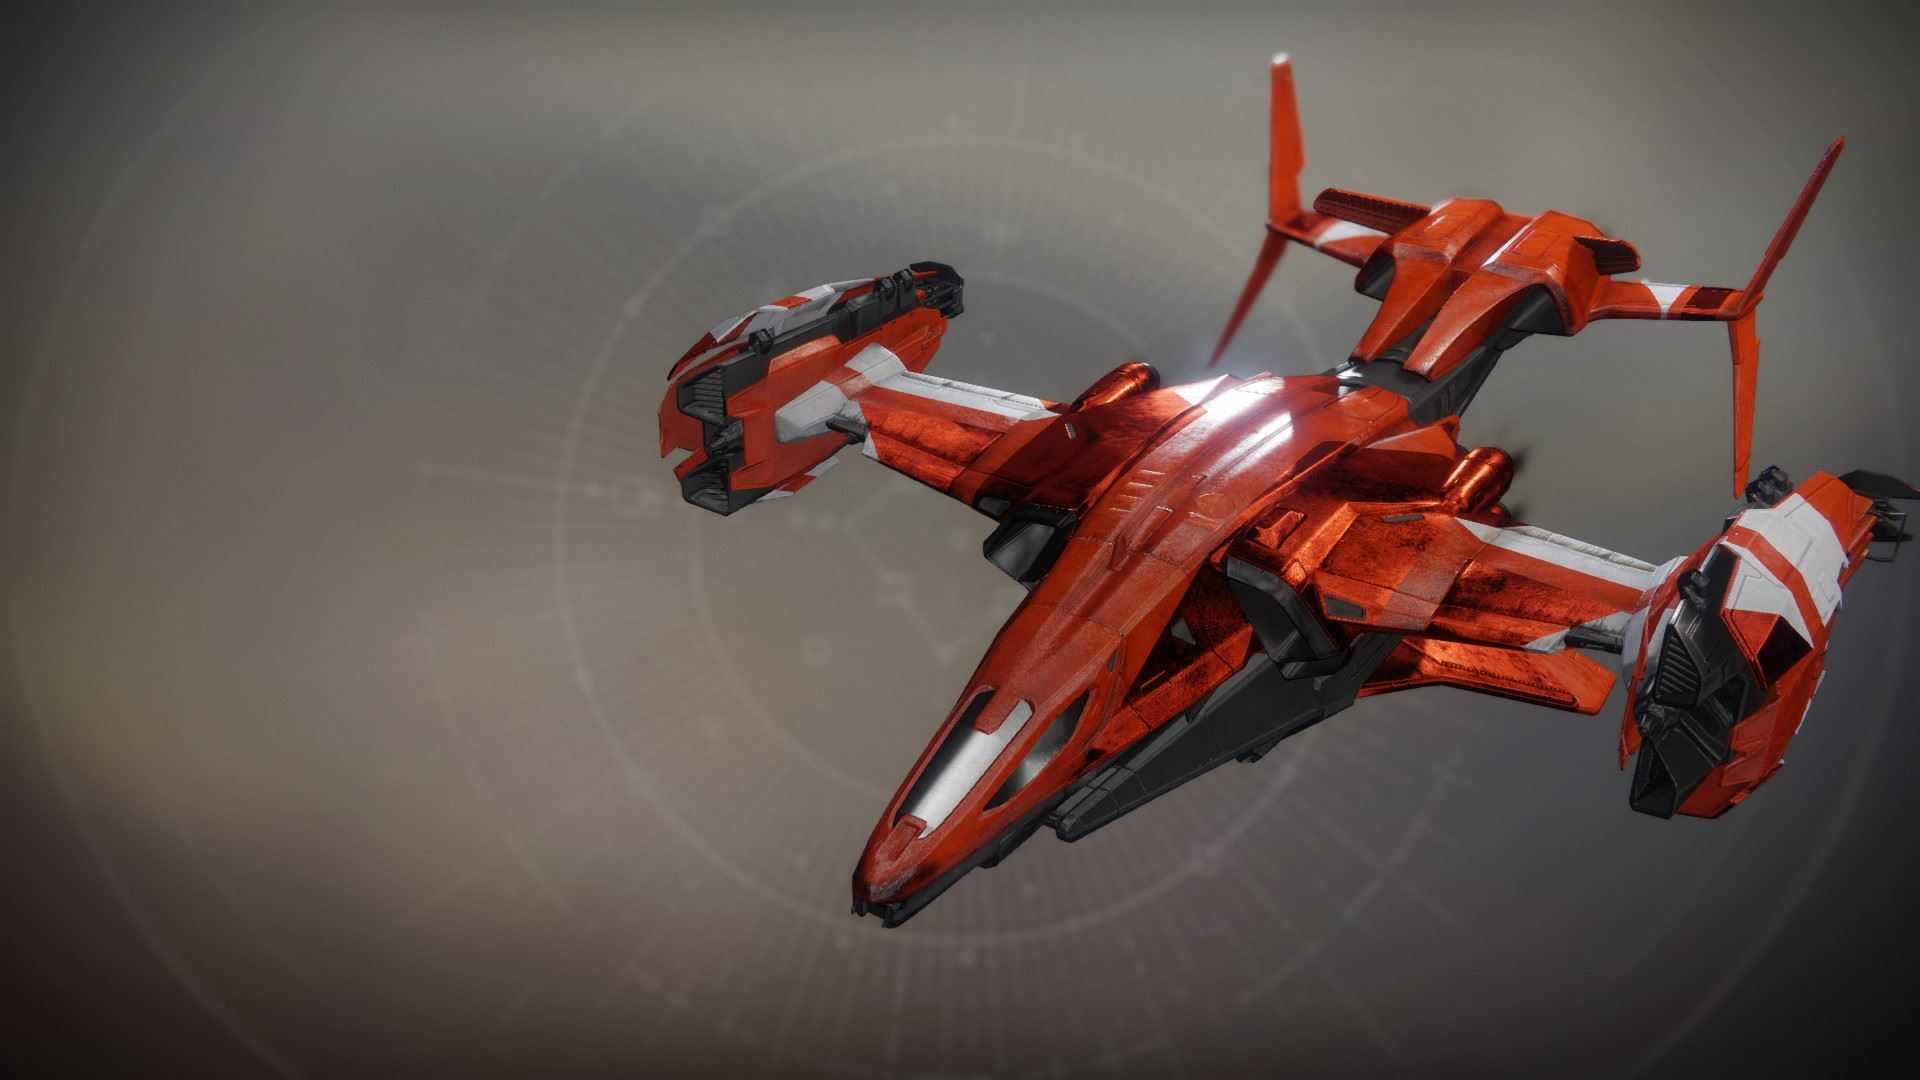 Murmuration Destiny 2 Legendary Ship Lightgg